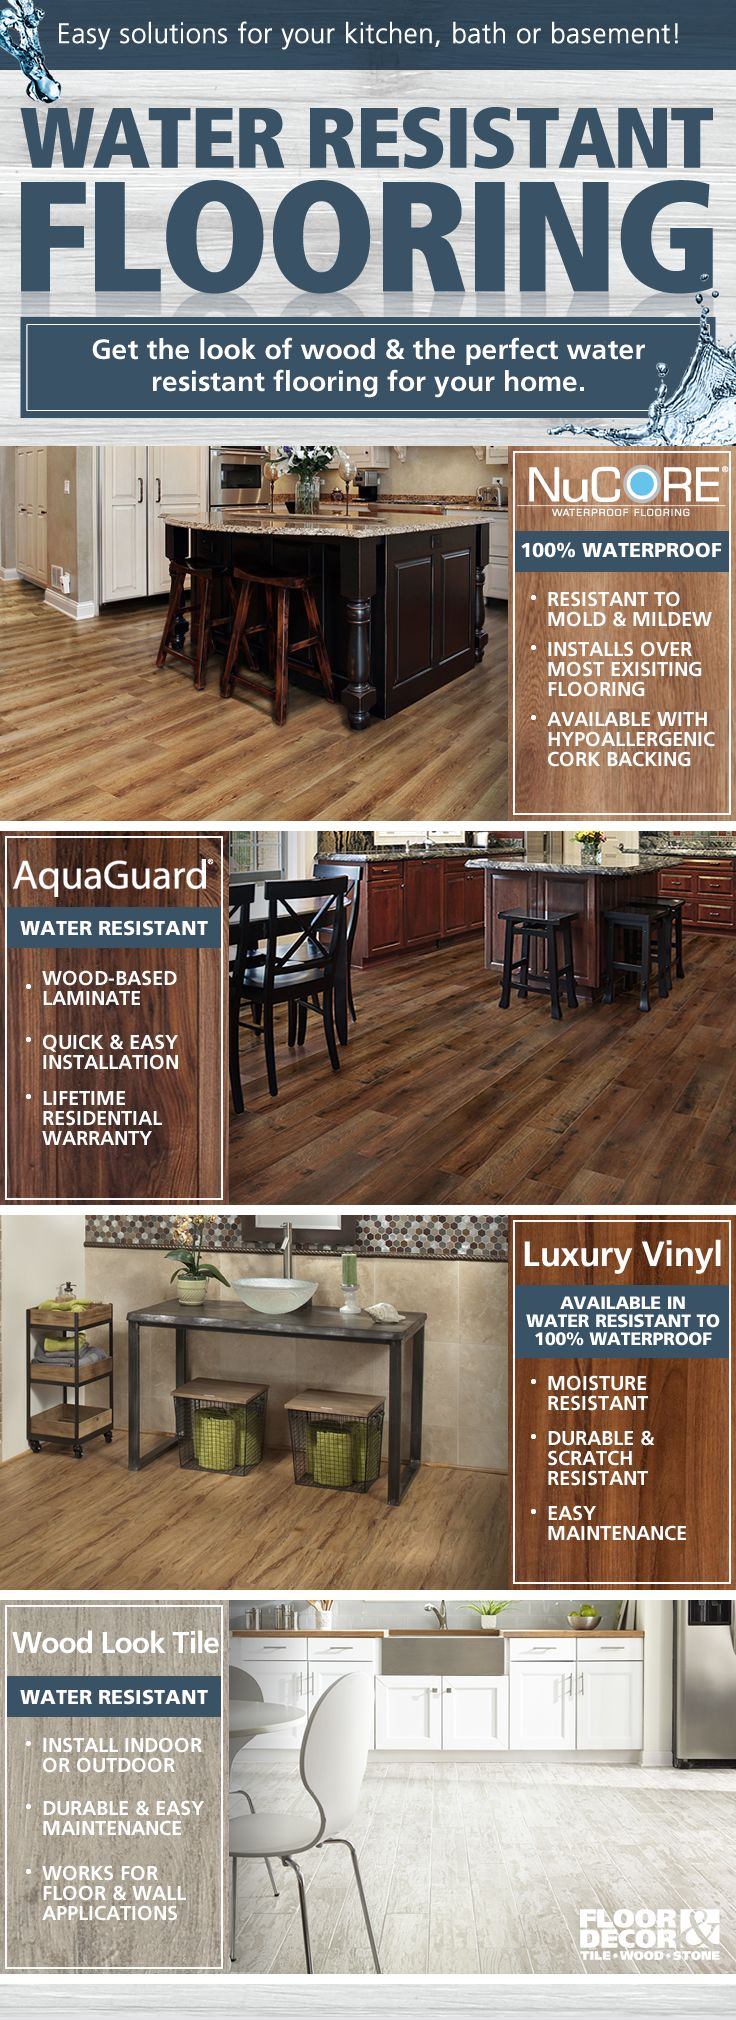 easy water resistant flooring solutions for your kitchen basement or bath - Kitchen Floor Solutions